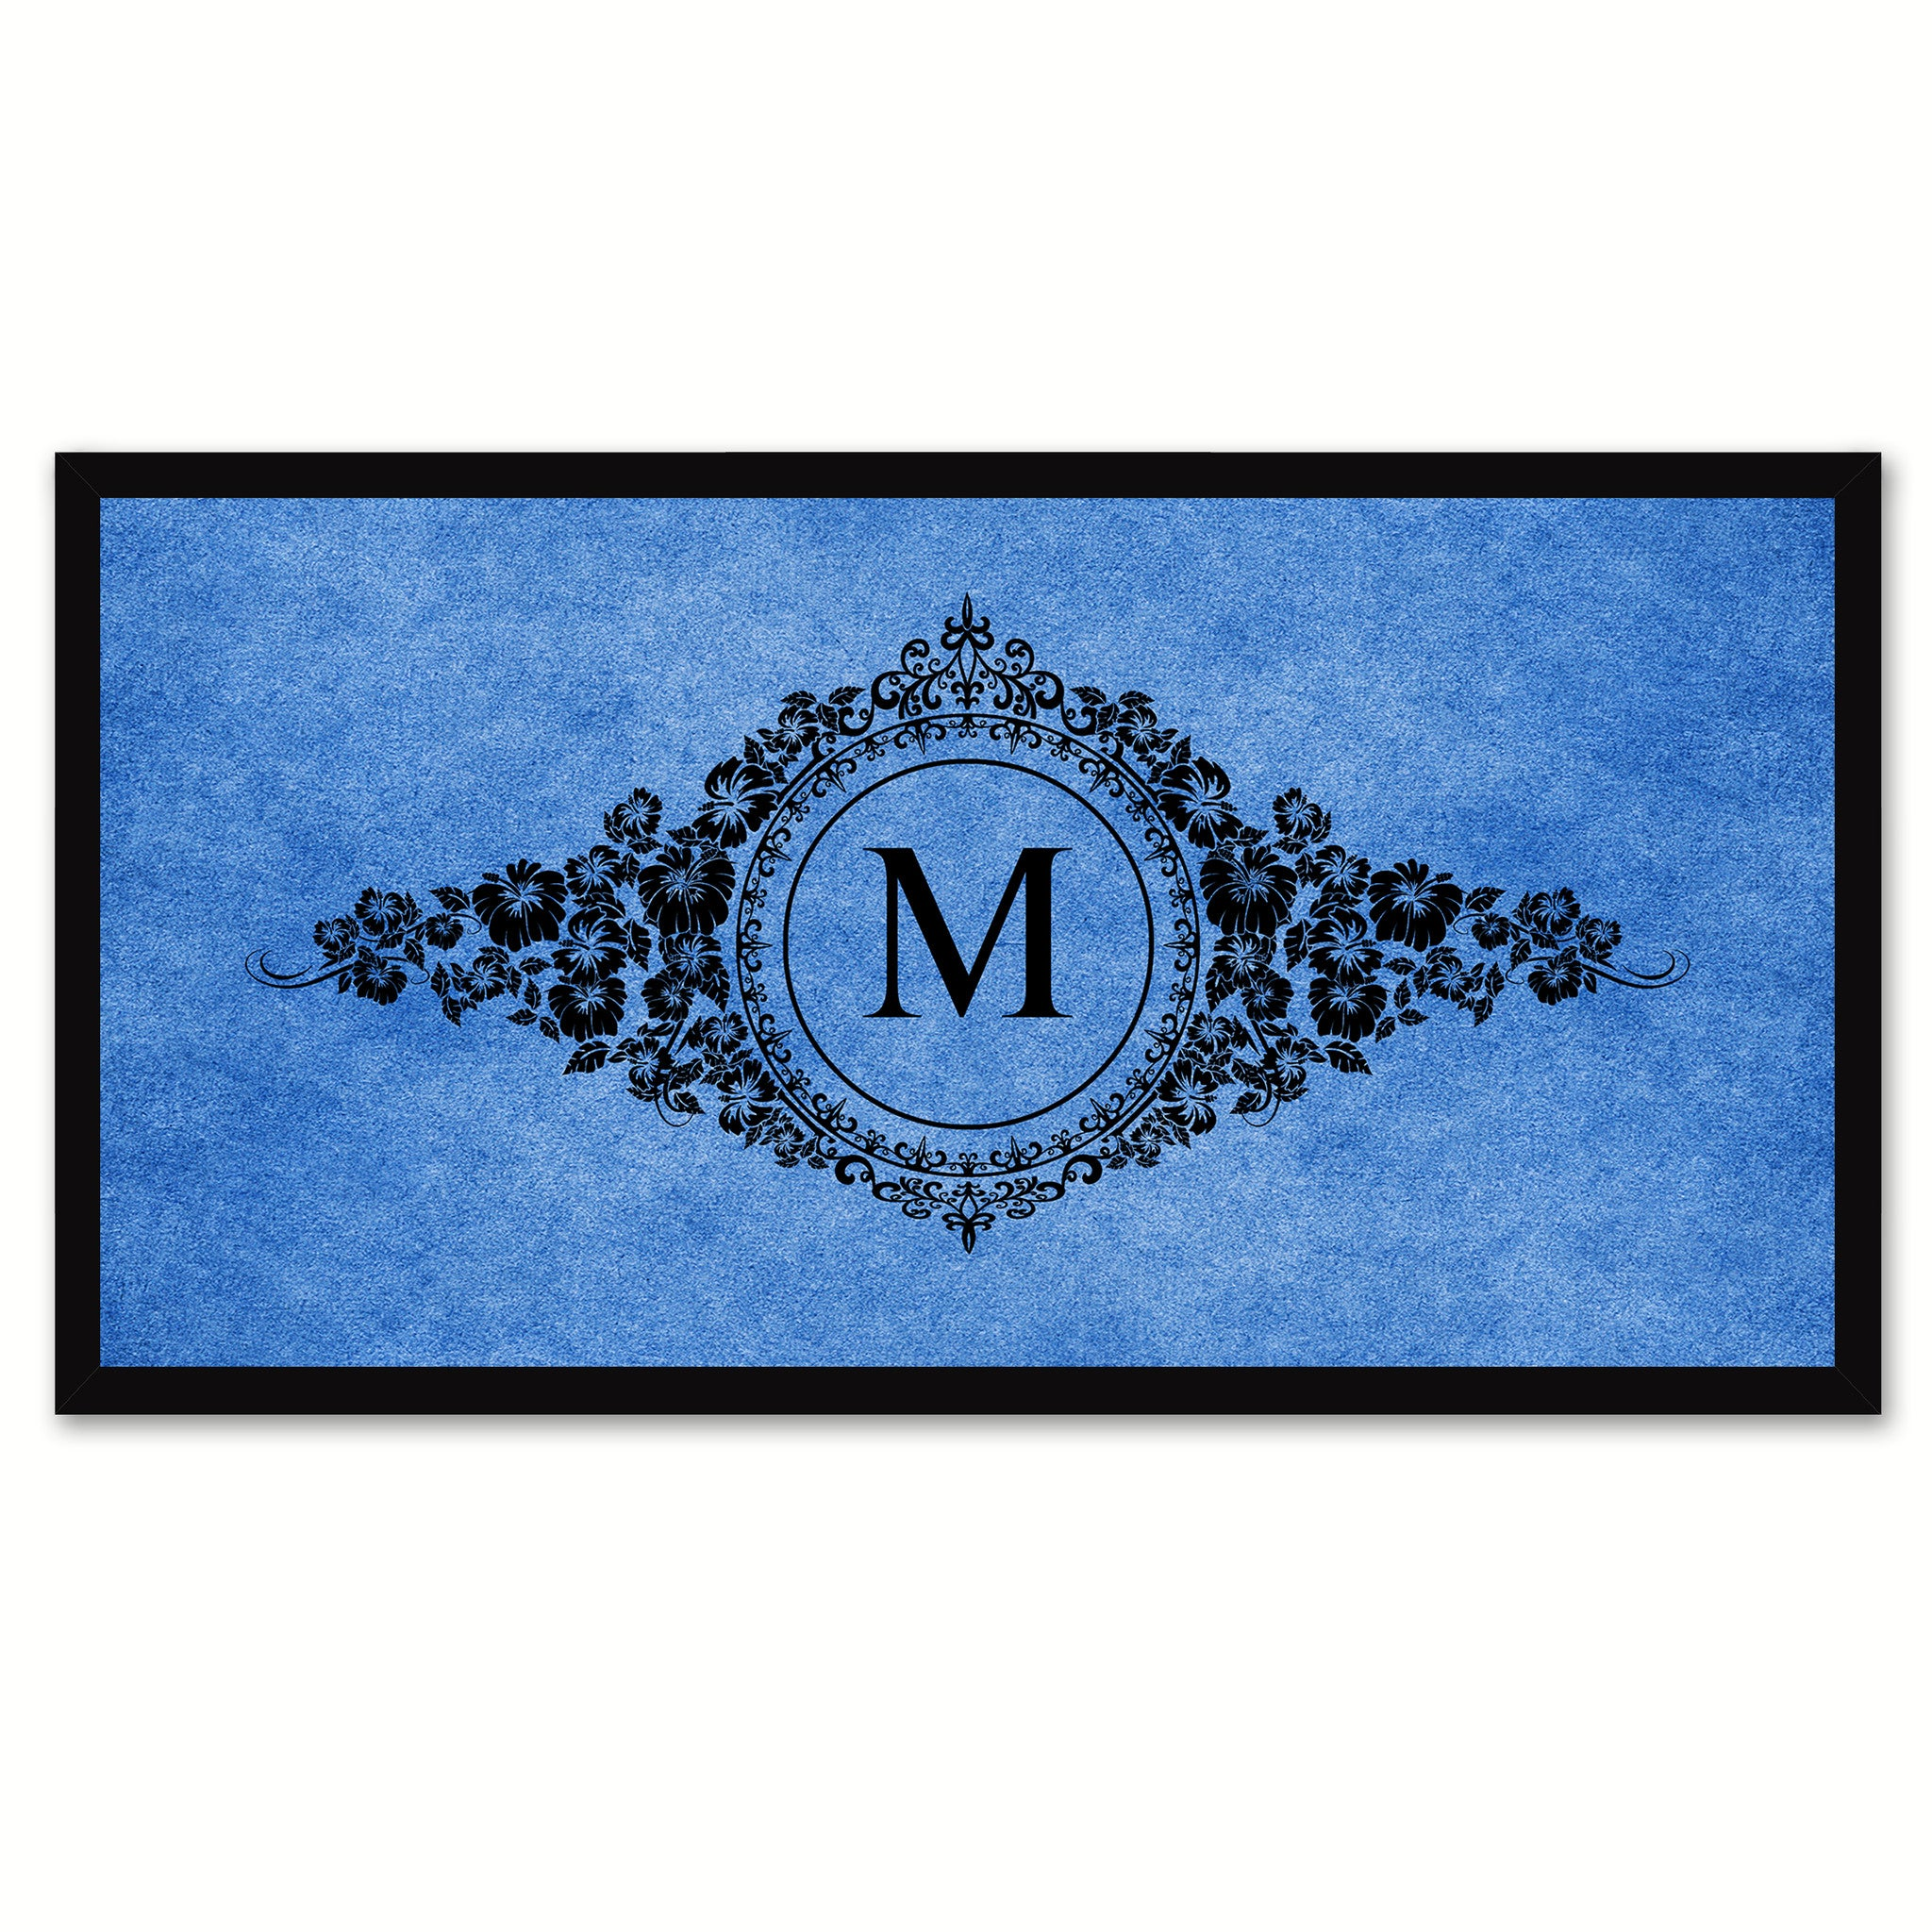 Alphabet Letter M Blue Canvas Print, Black Custom Frame